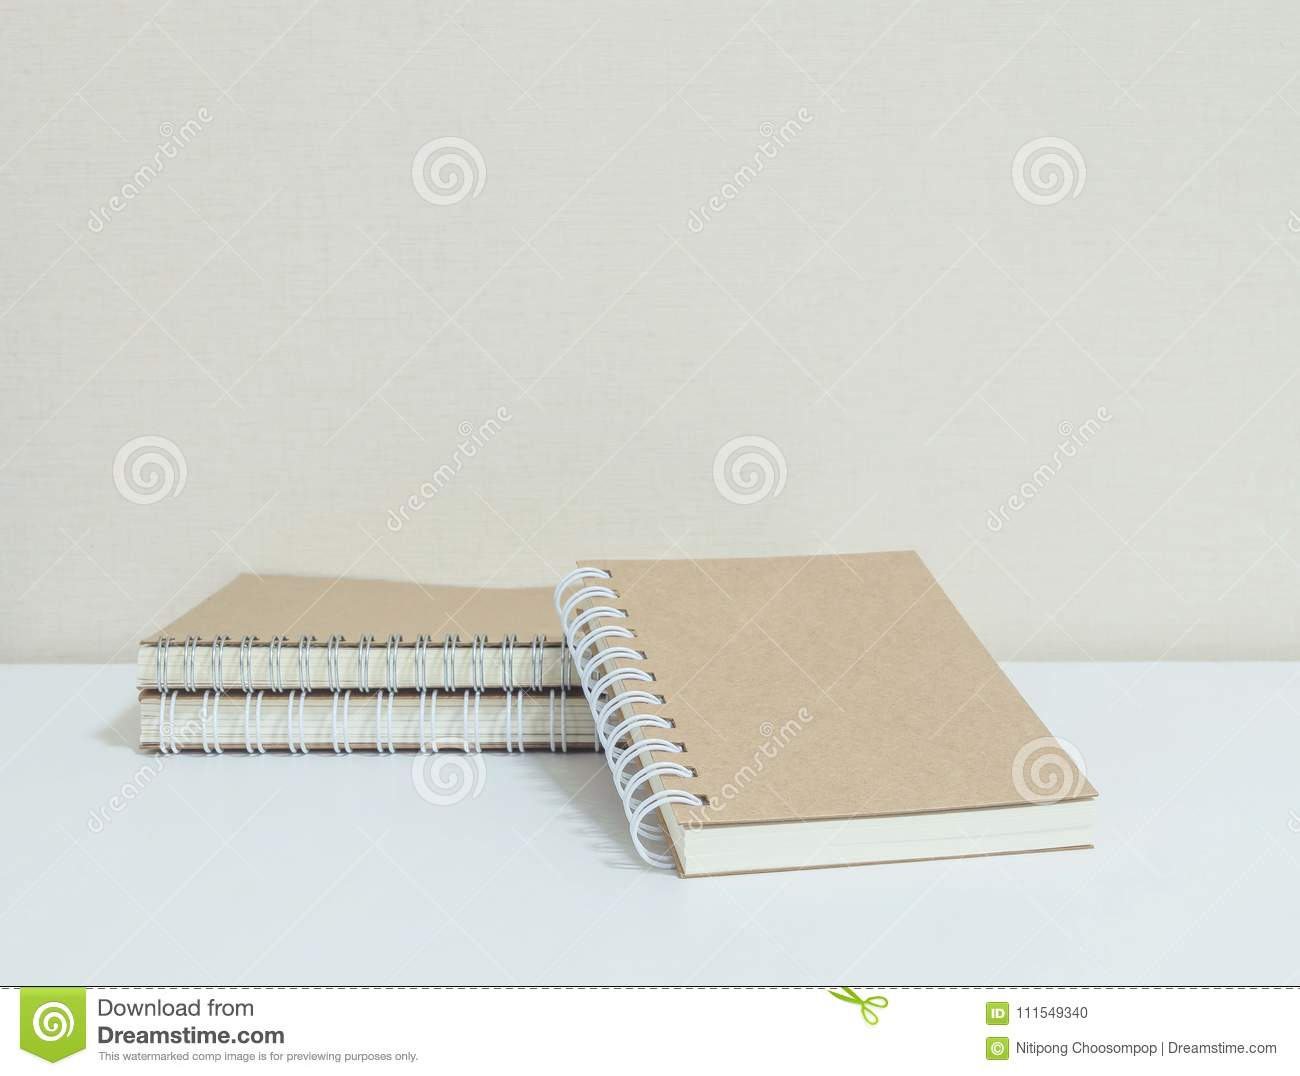 Closeup pile of brown note book on white desk and wallpaper in room textured background with copy space